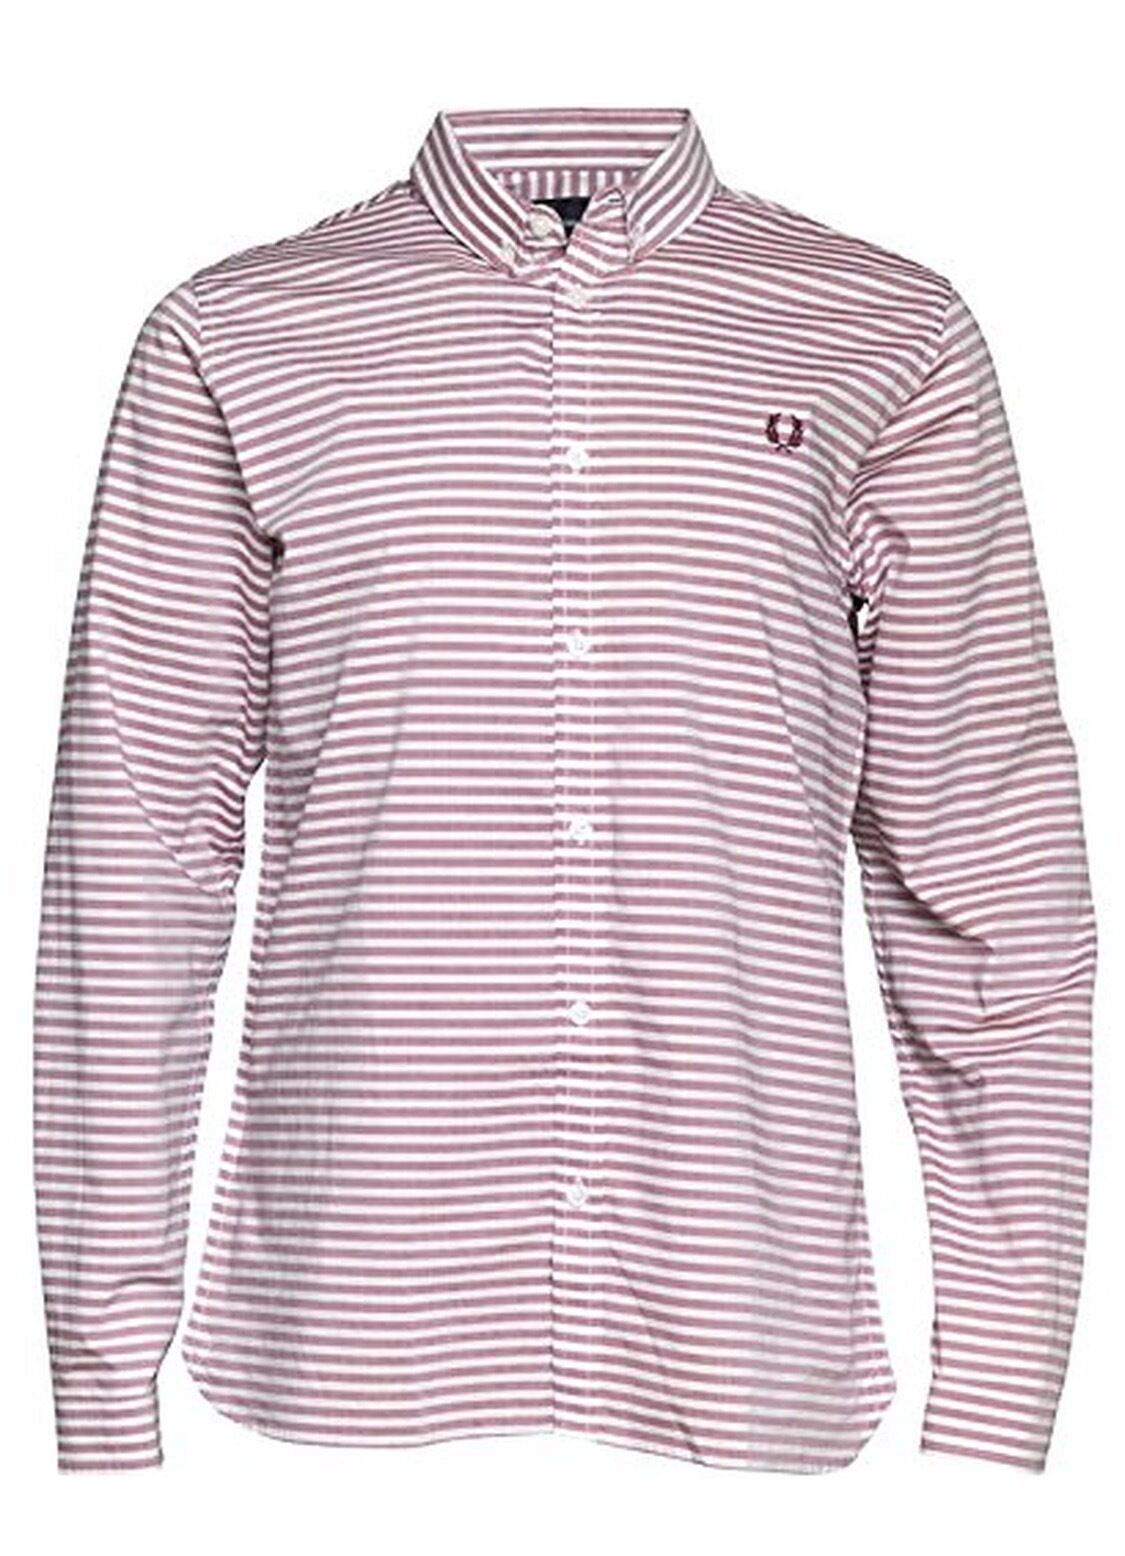 Fred Perry Horizontal Stripe Men's Long Sleeve Shirt M3273-106